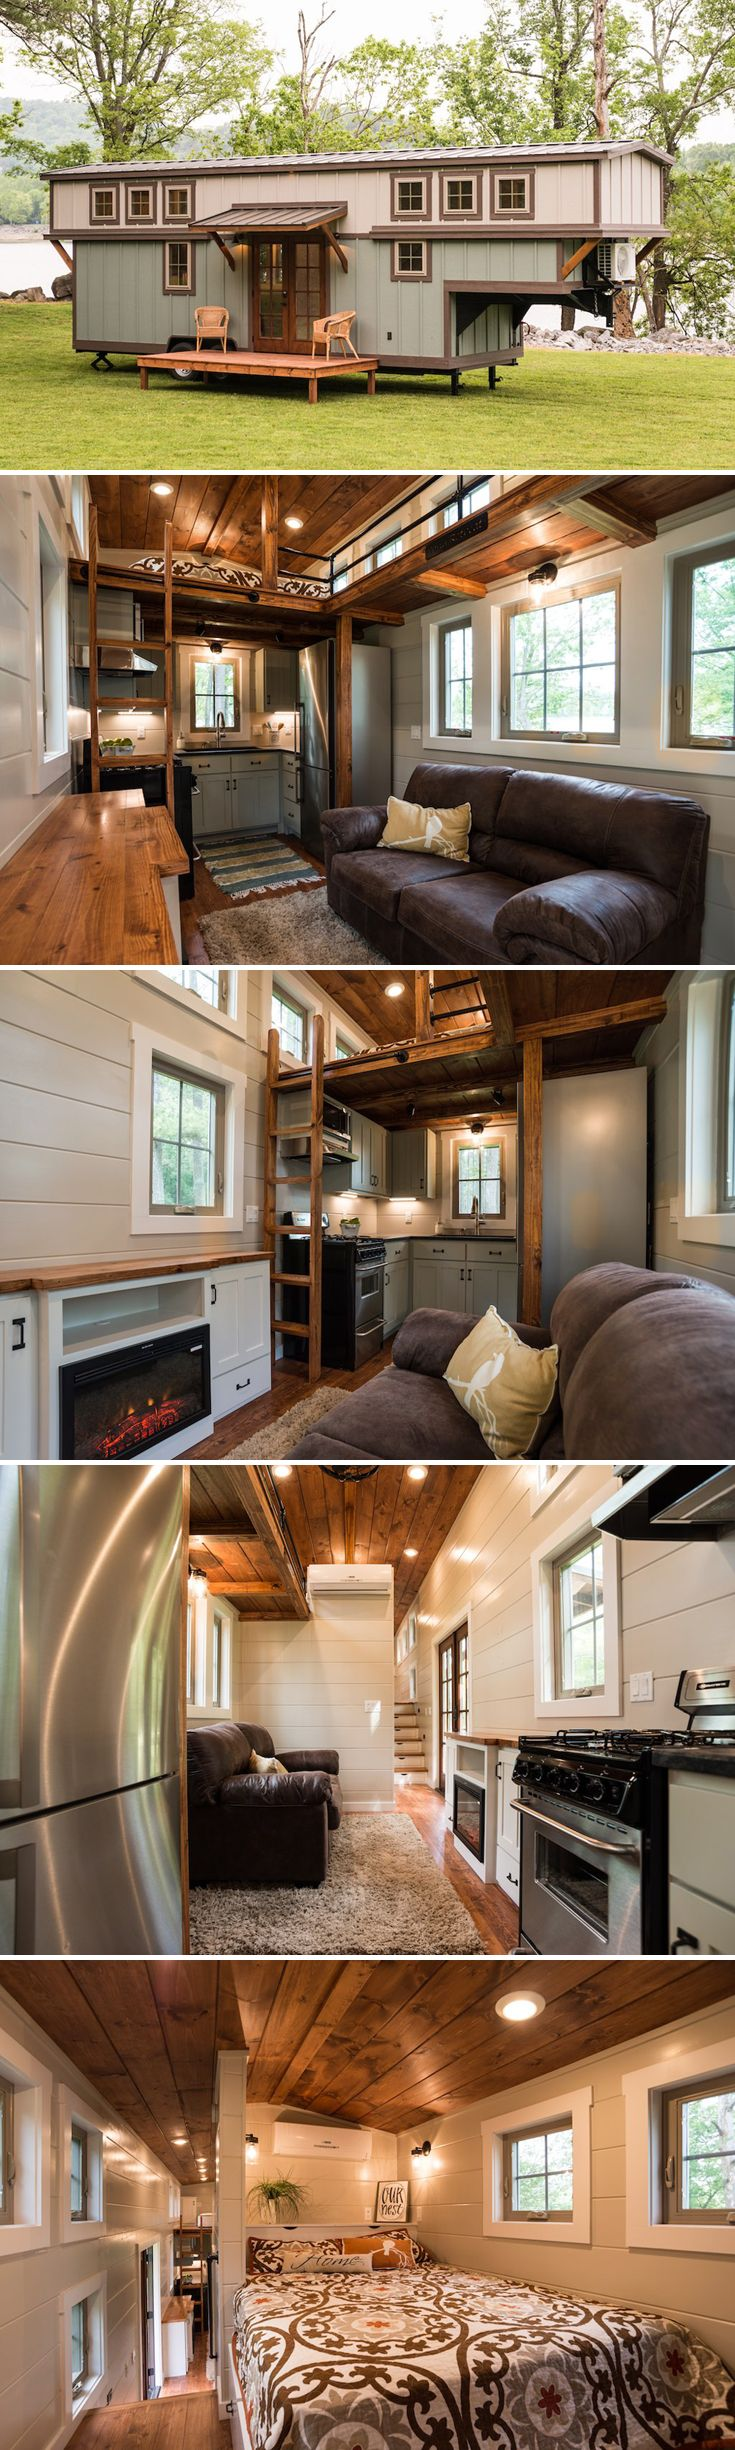 Tiny houses on wheels for sale in alabama - Retreat By Timbercraft Tiny Homes